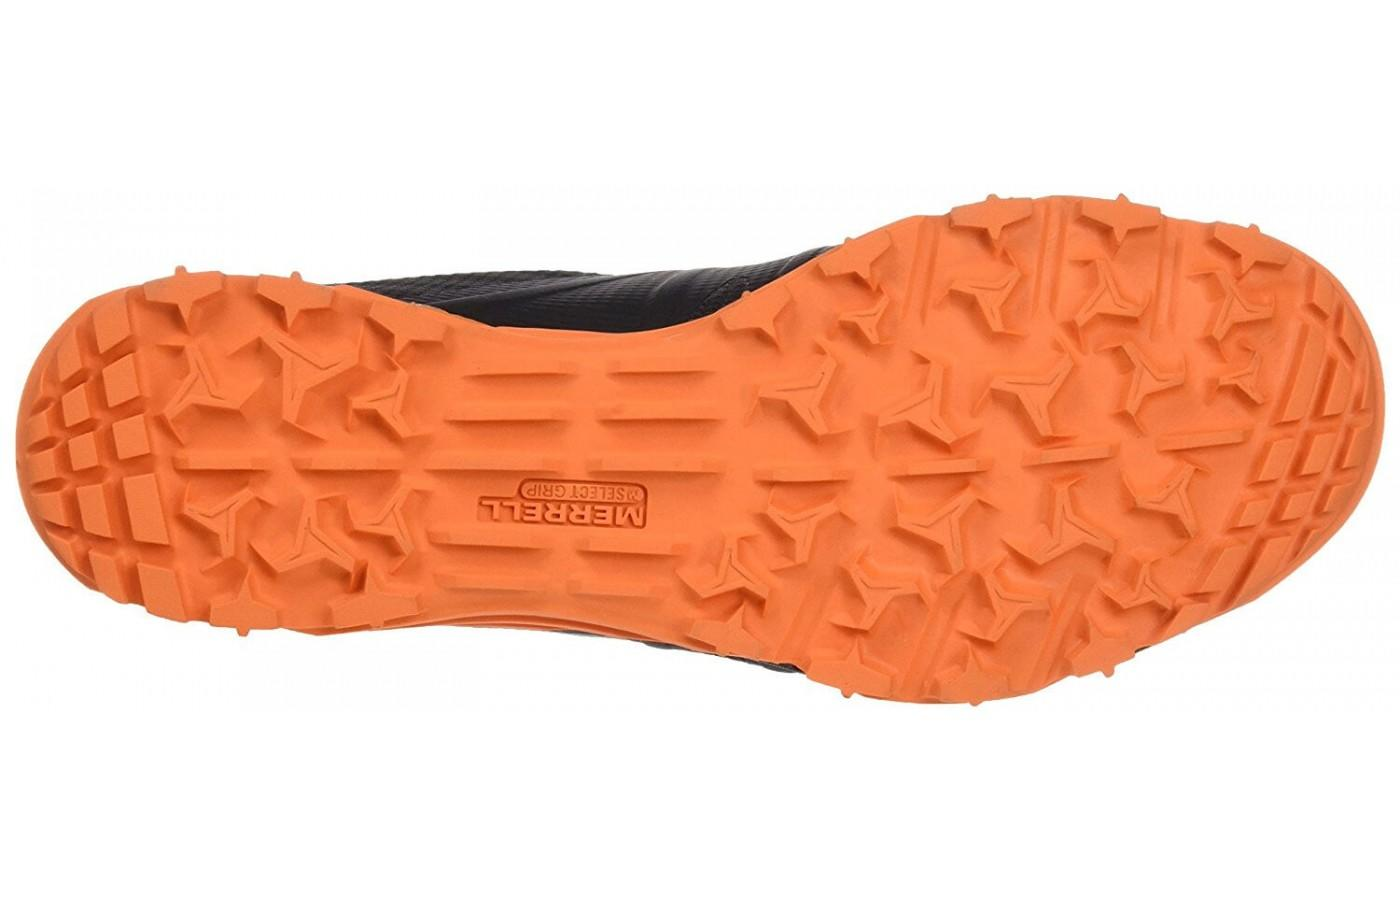 The Merrell Avalaunch Tough Mudder has M-Select GRIP technology for off-road traction